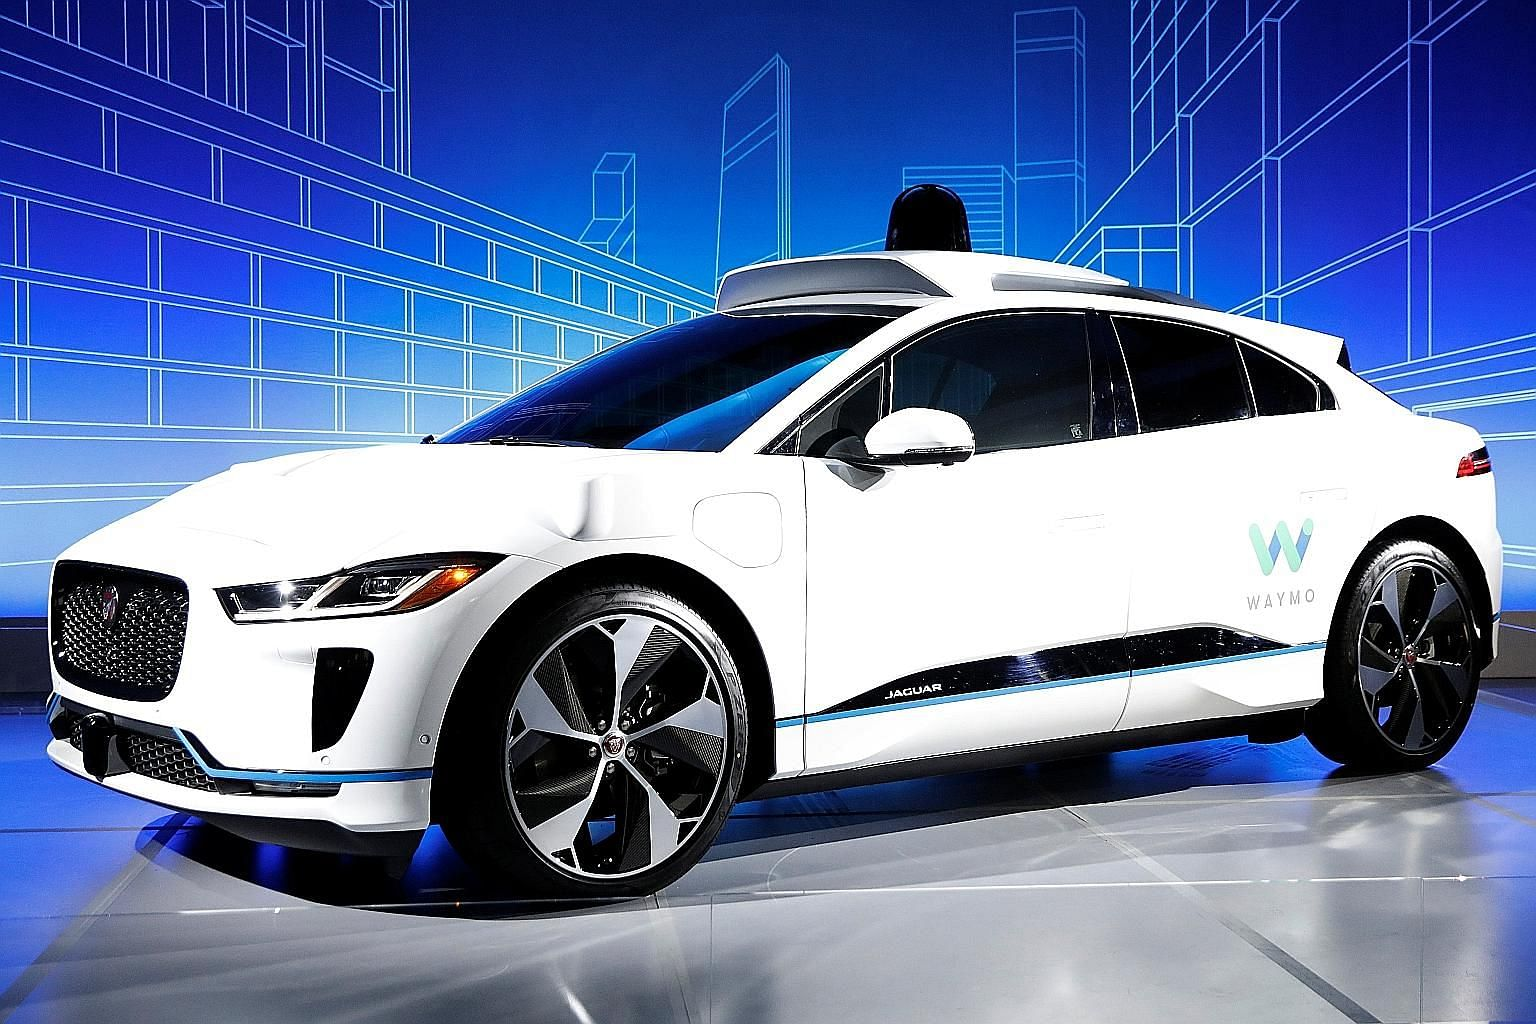 A Jaguar I-Pace self-driving car at its unveiling by Waymo in New York.